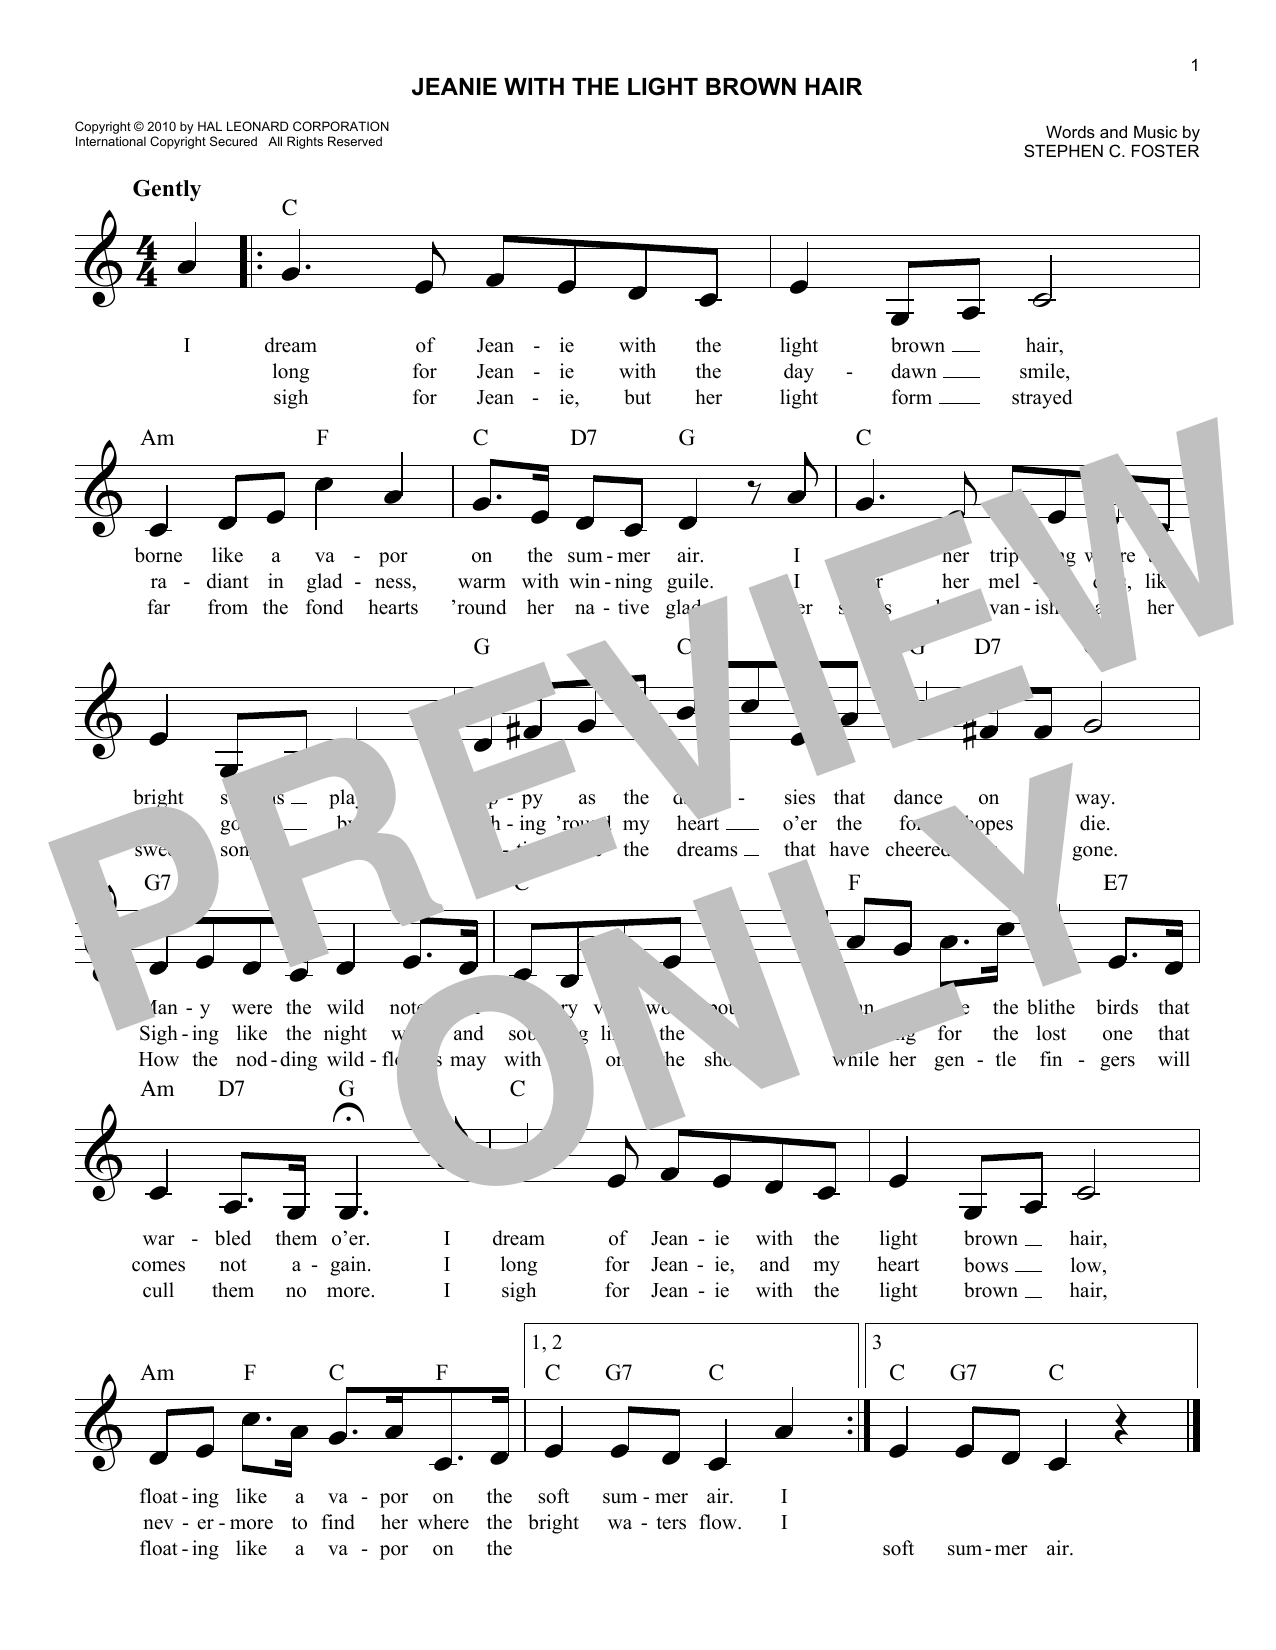 Stephen C. Foster Jeanie With The Light Brown Hair sheet music notes and chords. Download Printable PDF.